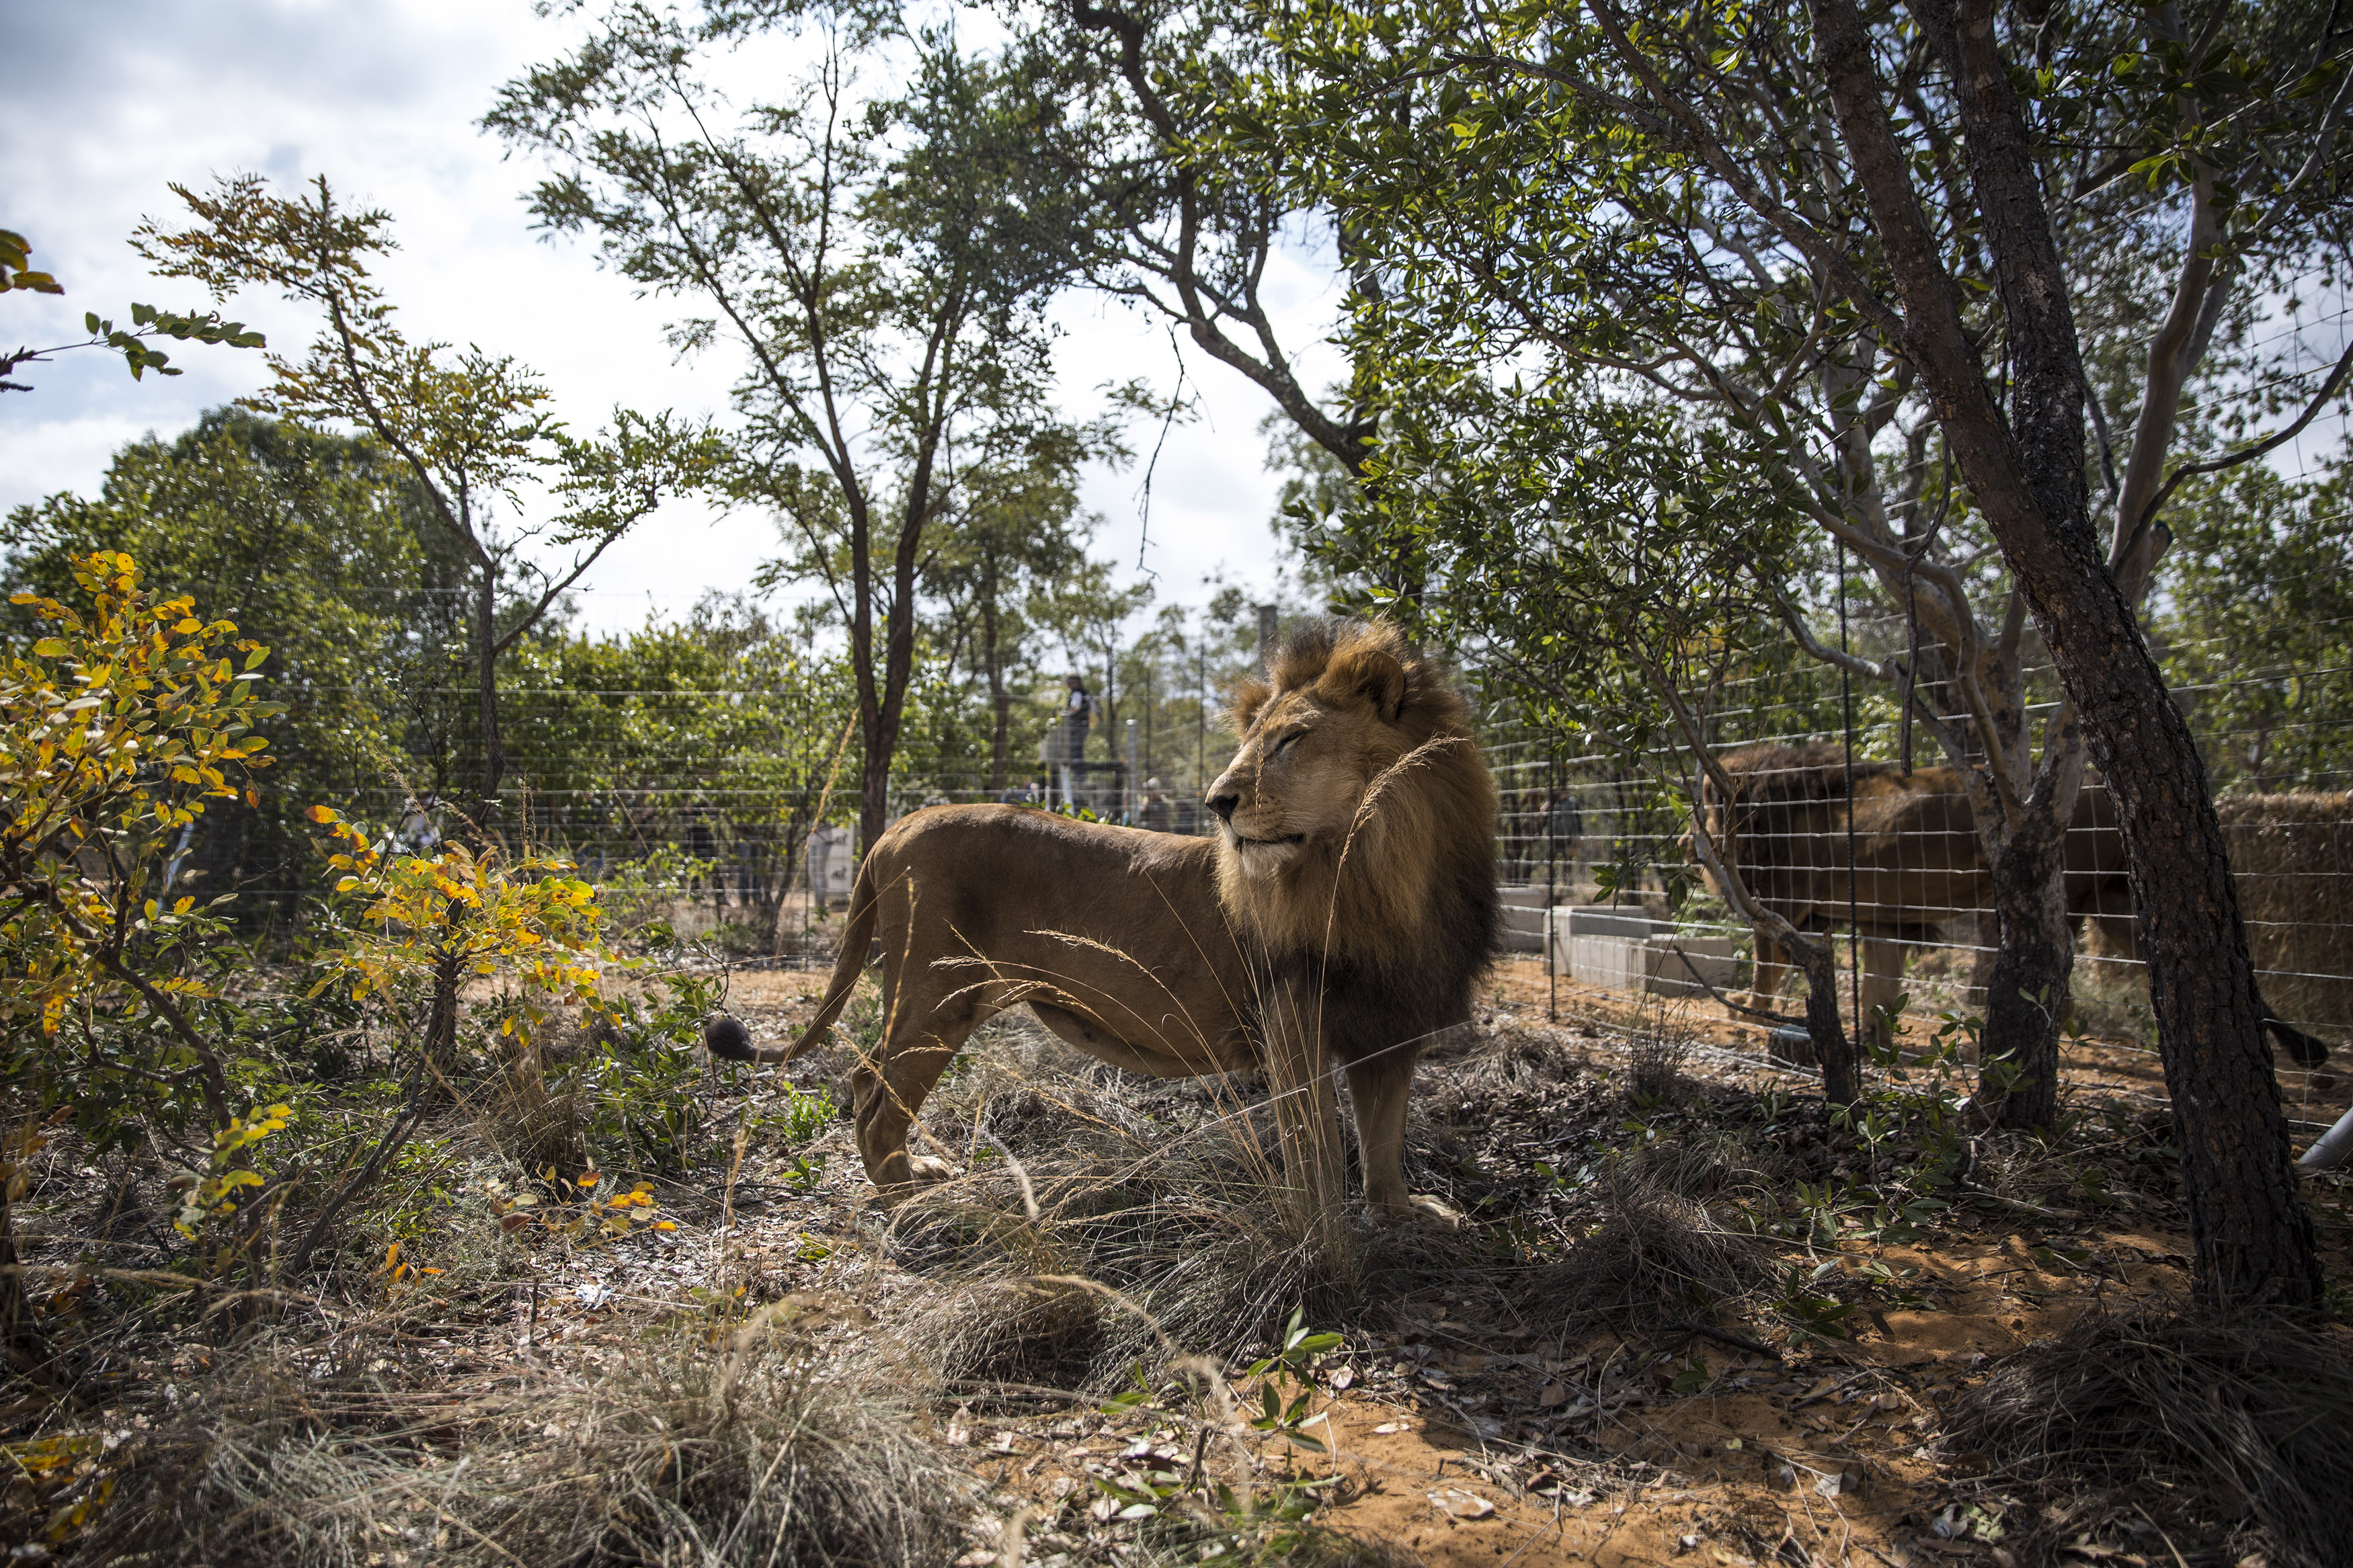 One of the 33 Lions enjoys his new enclosure at the Emoya  Big Cat Sanctuary', on May 01, 2016 in Vaalwater, South Africa. A total of 33 former circus Lions, 22 males and 11 females from Peru and Columbia were airlifted to South Africa yesterday, before being released today to live out their lives on the private reserve in the Limpopo Province. 24 of the animals were rescued in raids on circuses operating in Peru, with the rest voluntarily surrendered by a circus in Colombia after Colombias Congress passed a bill prohibiting circuses from using wild animals.